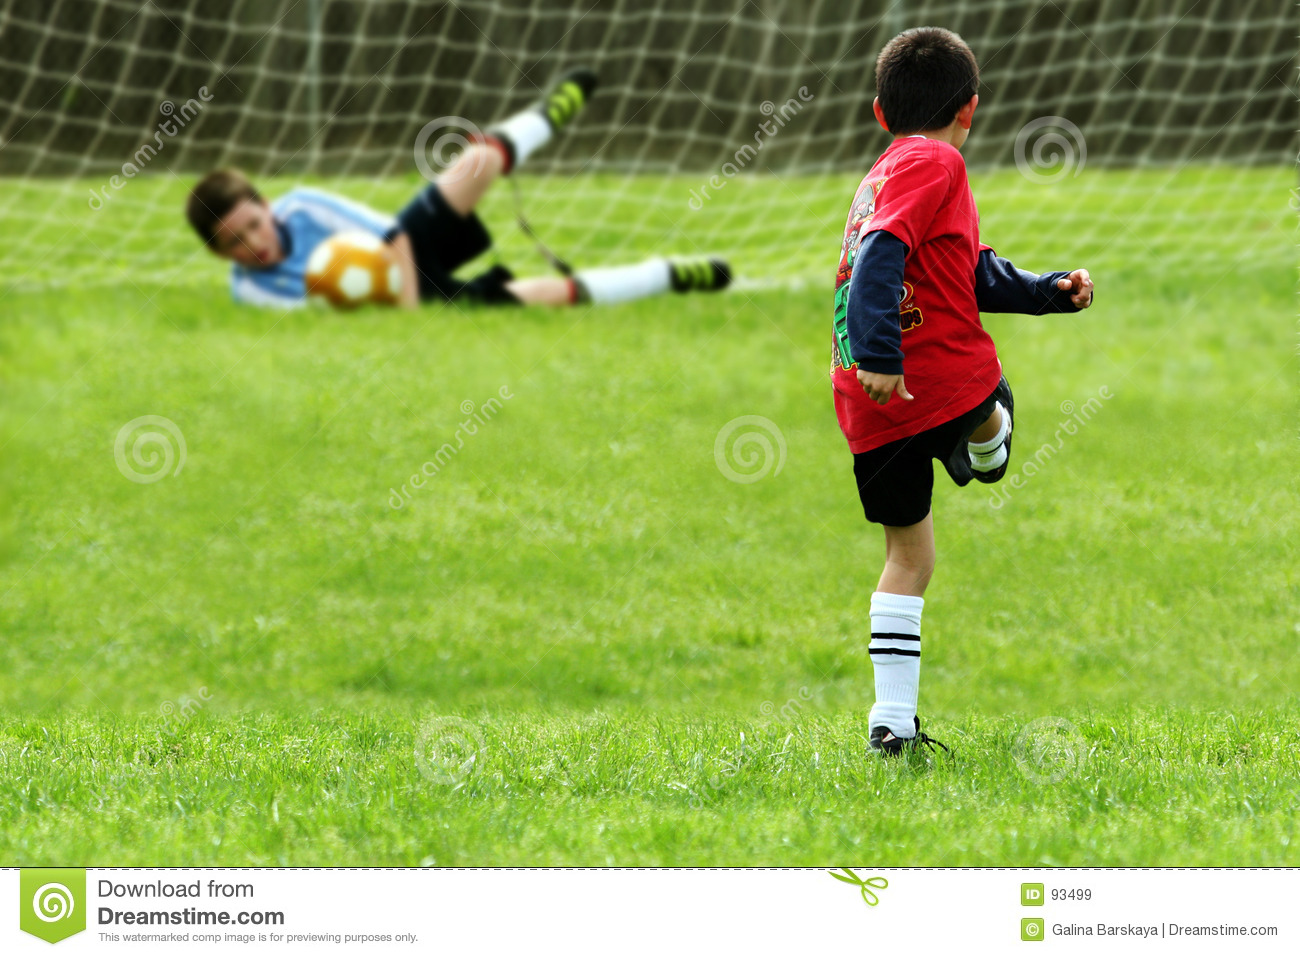 Boys Playing Soccer Stock Image. Image Of Keeper, Ball